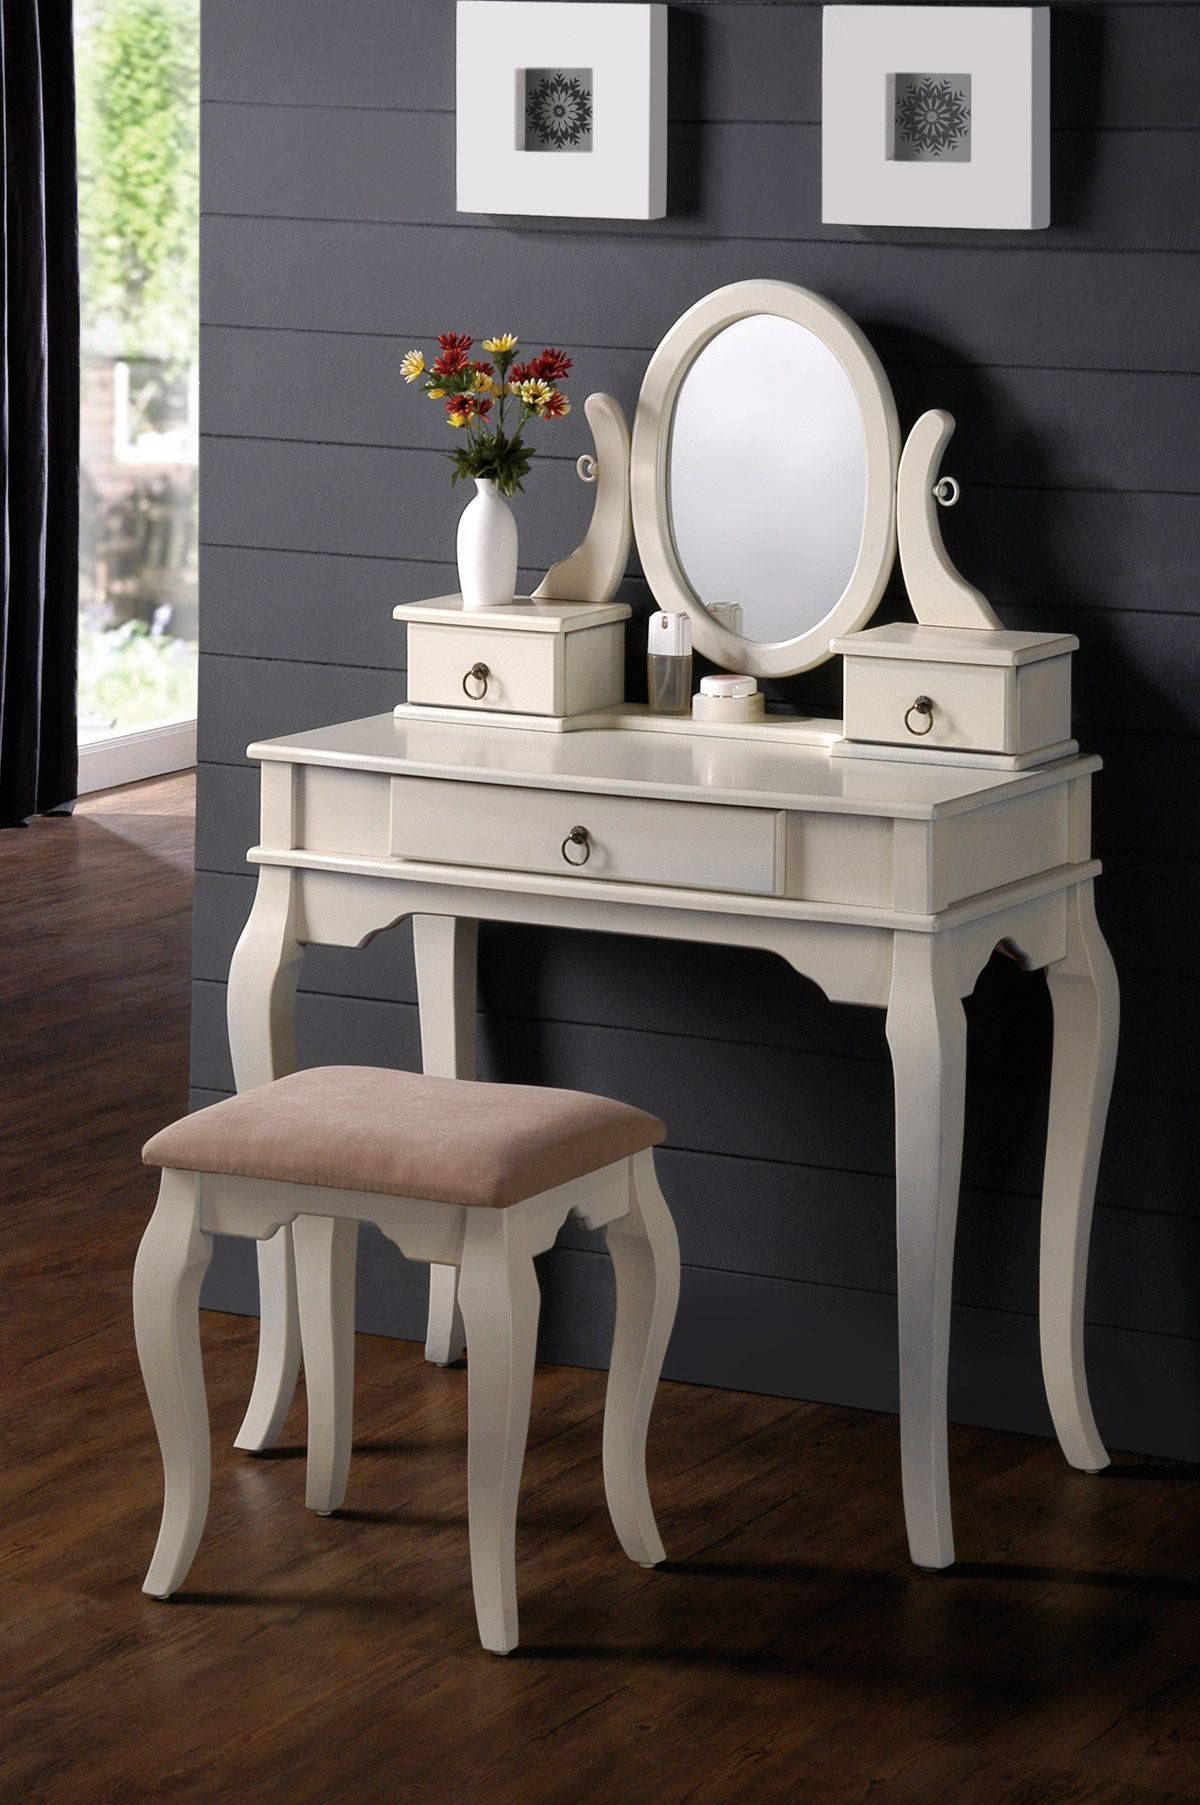 hollywood vanity mirror with lights kids - Google Search | Dress ...